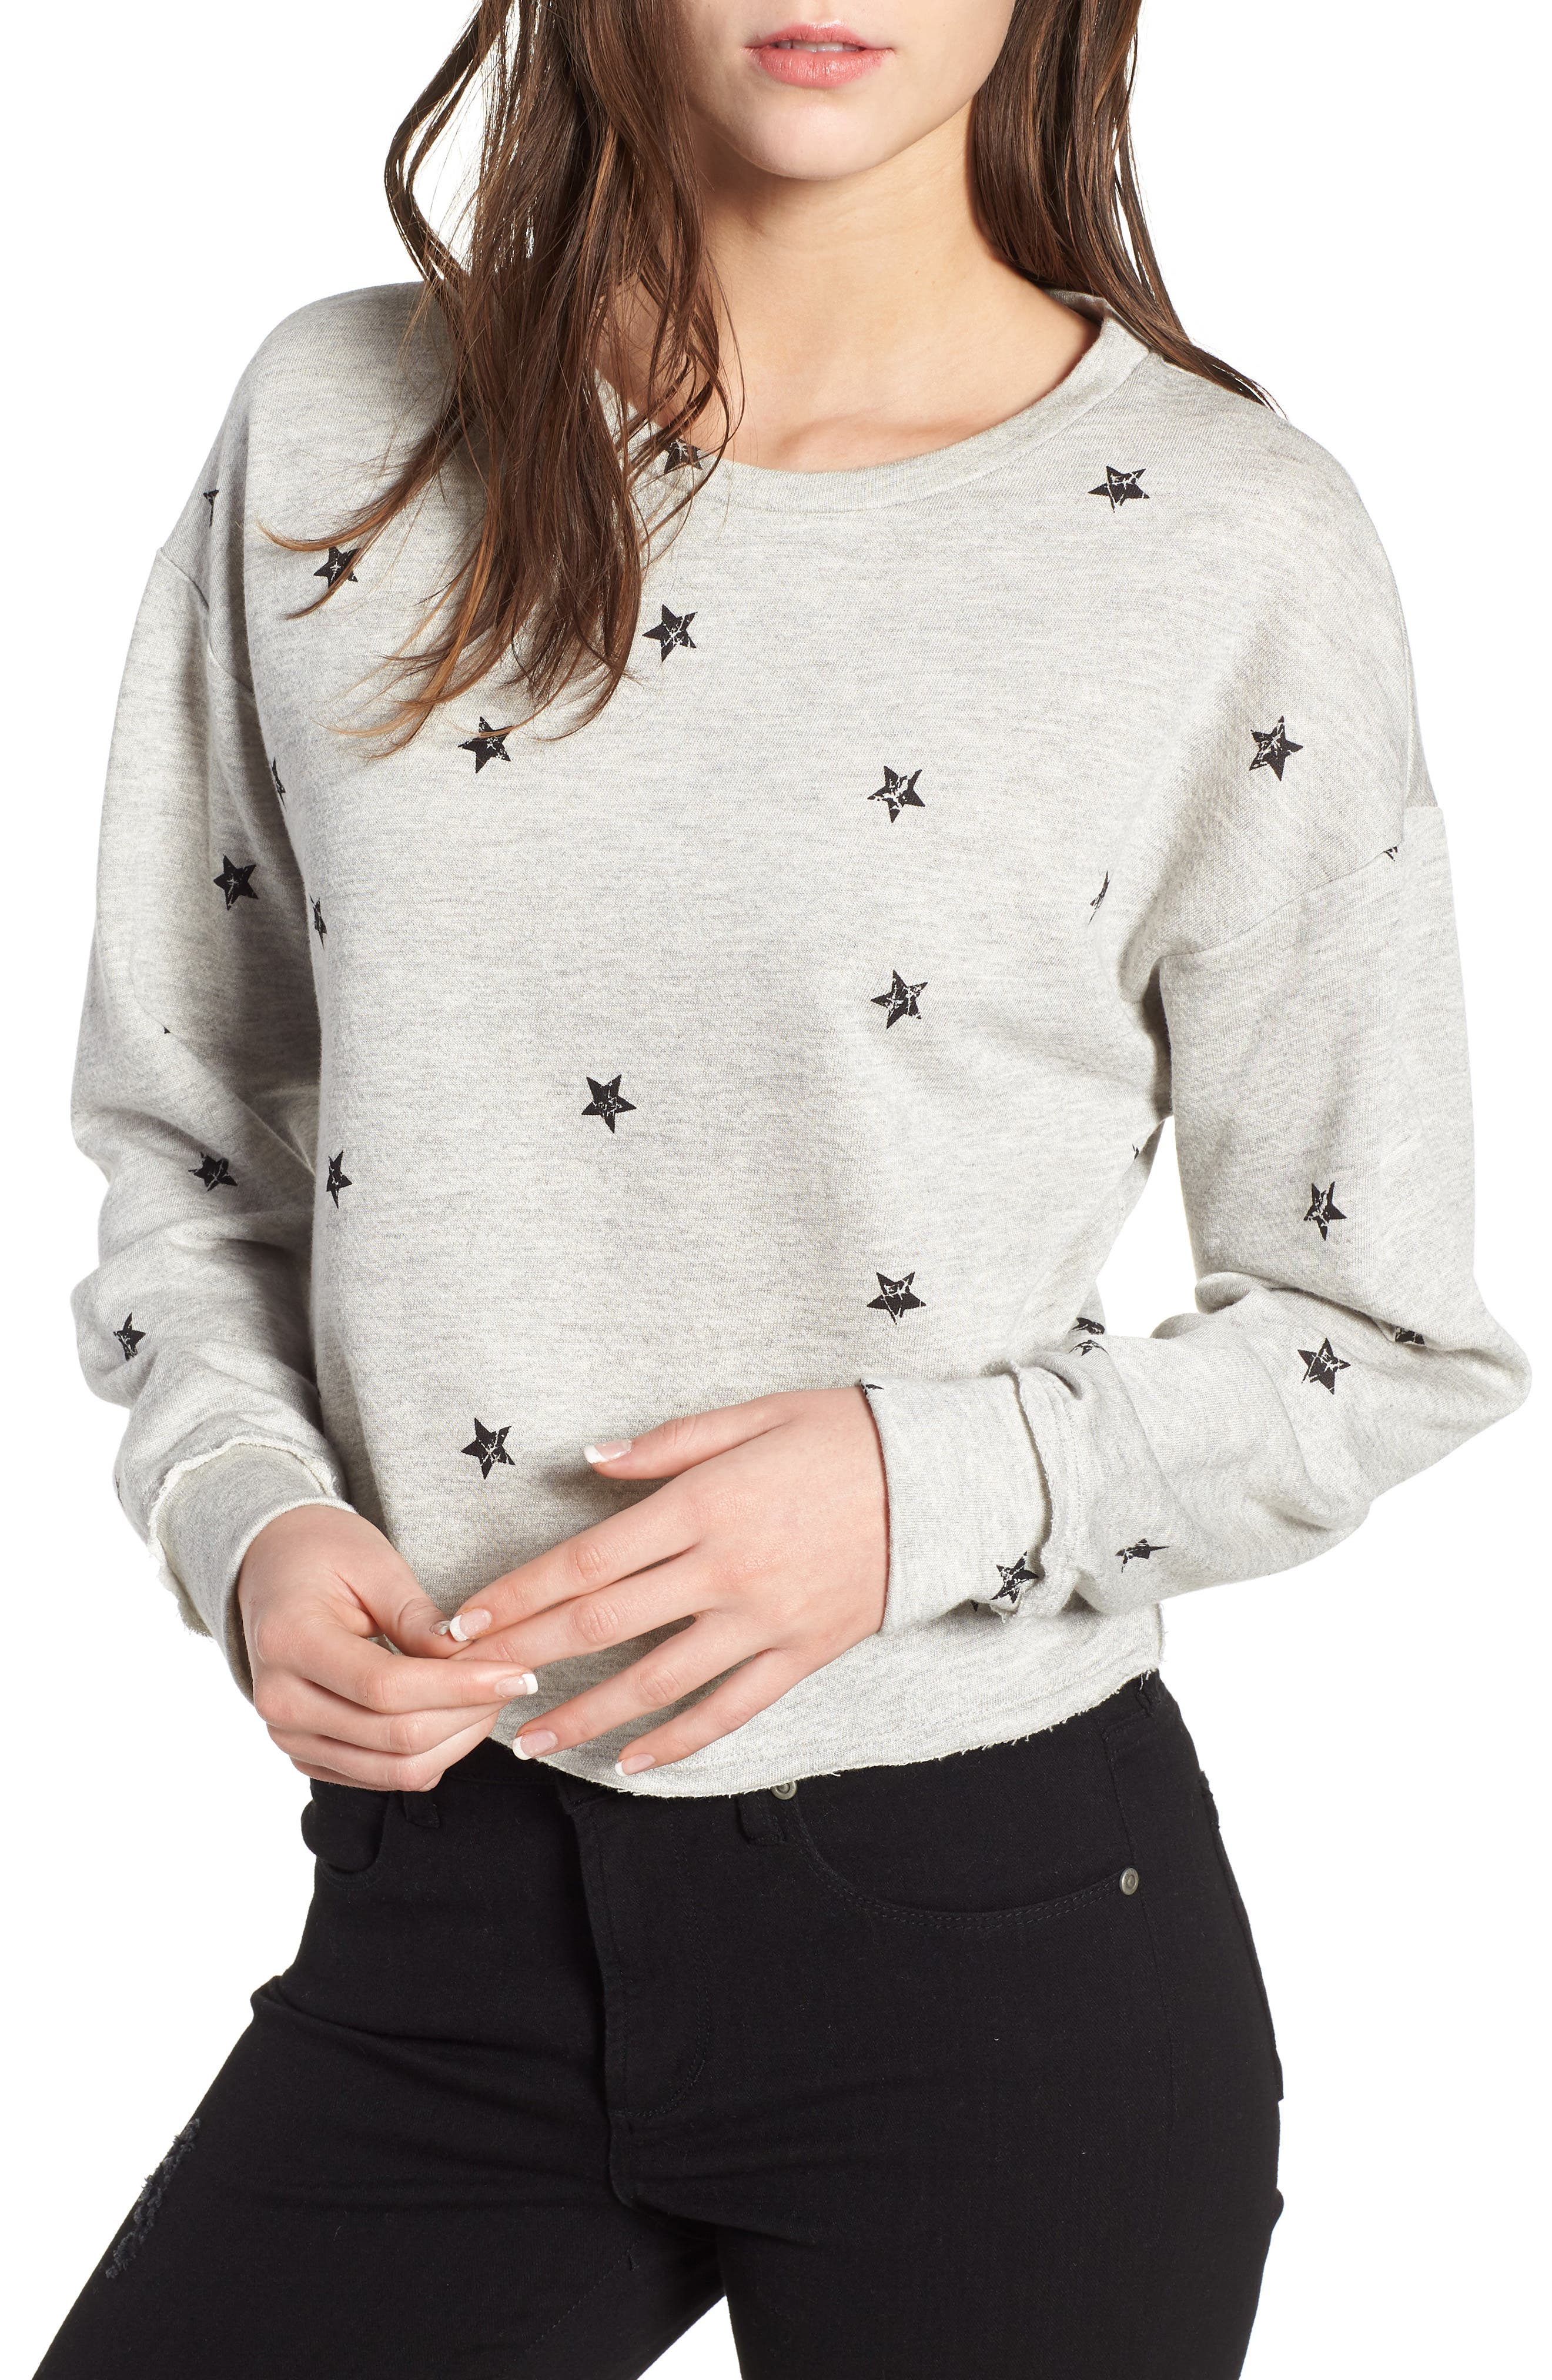 Star Print Sweatshirt,                         Main,                         color, 035